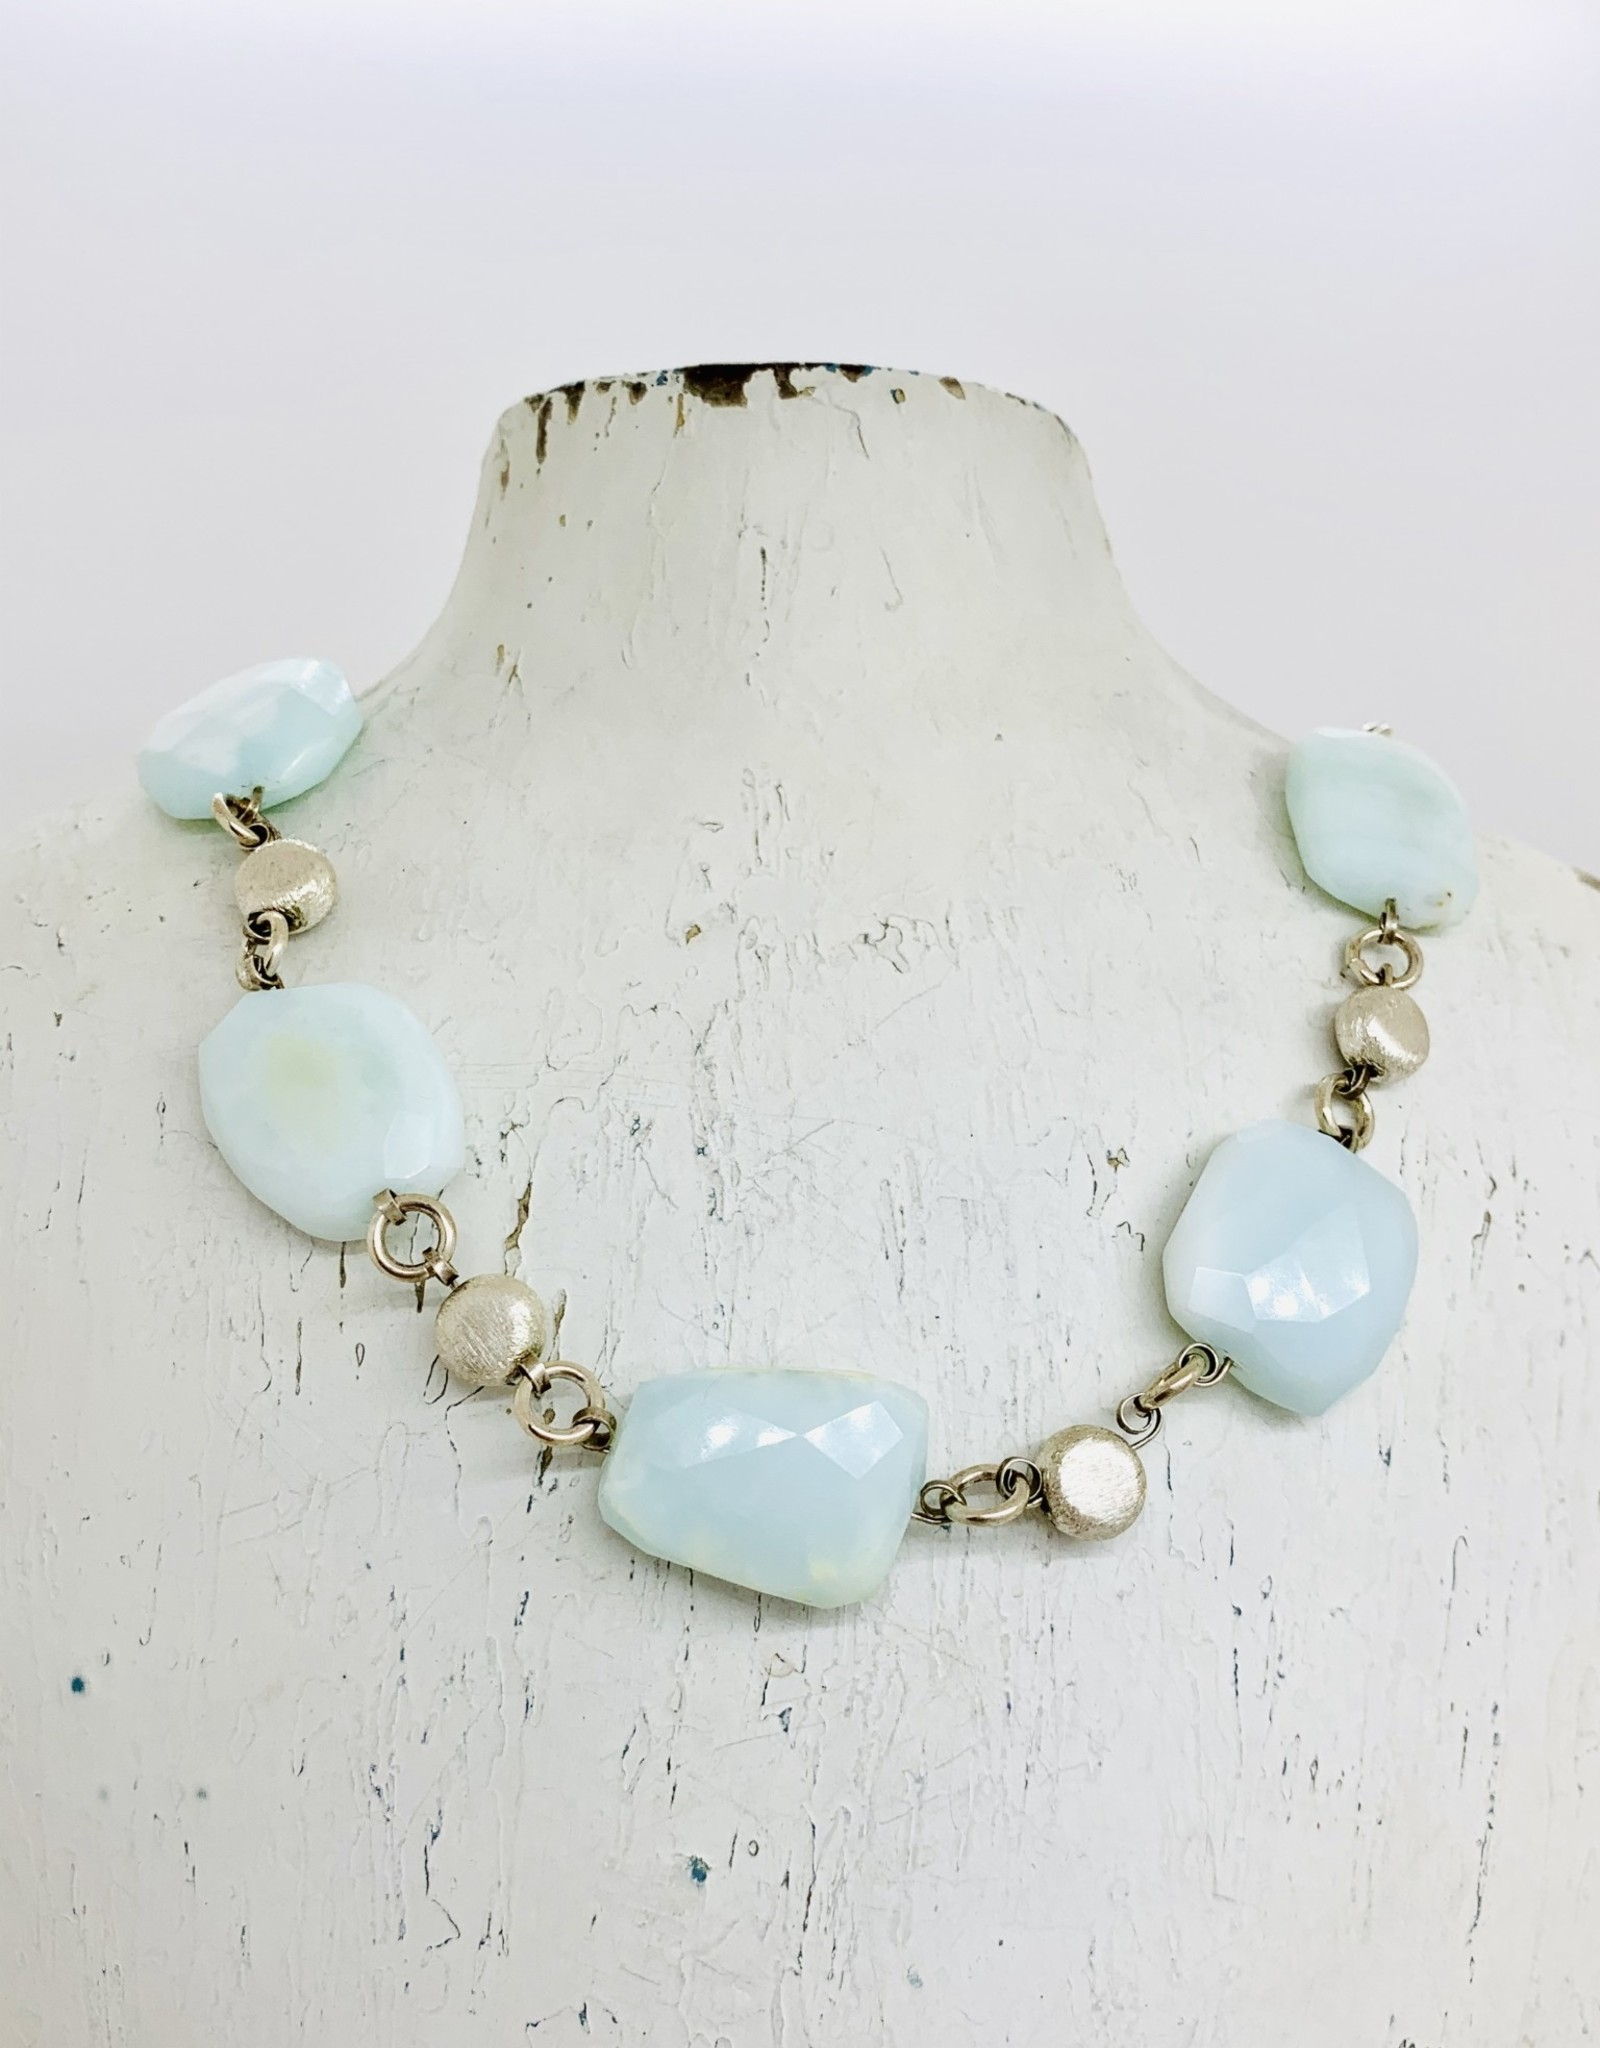 Handmade Silver Necklace with 5 blue opal nuggets, 4 brushed coins